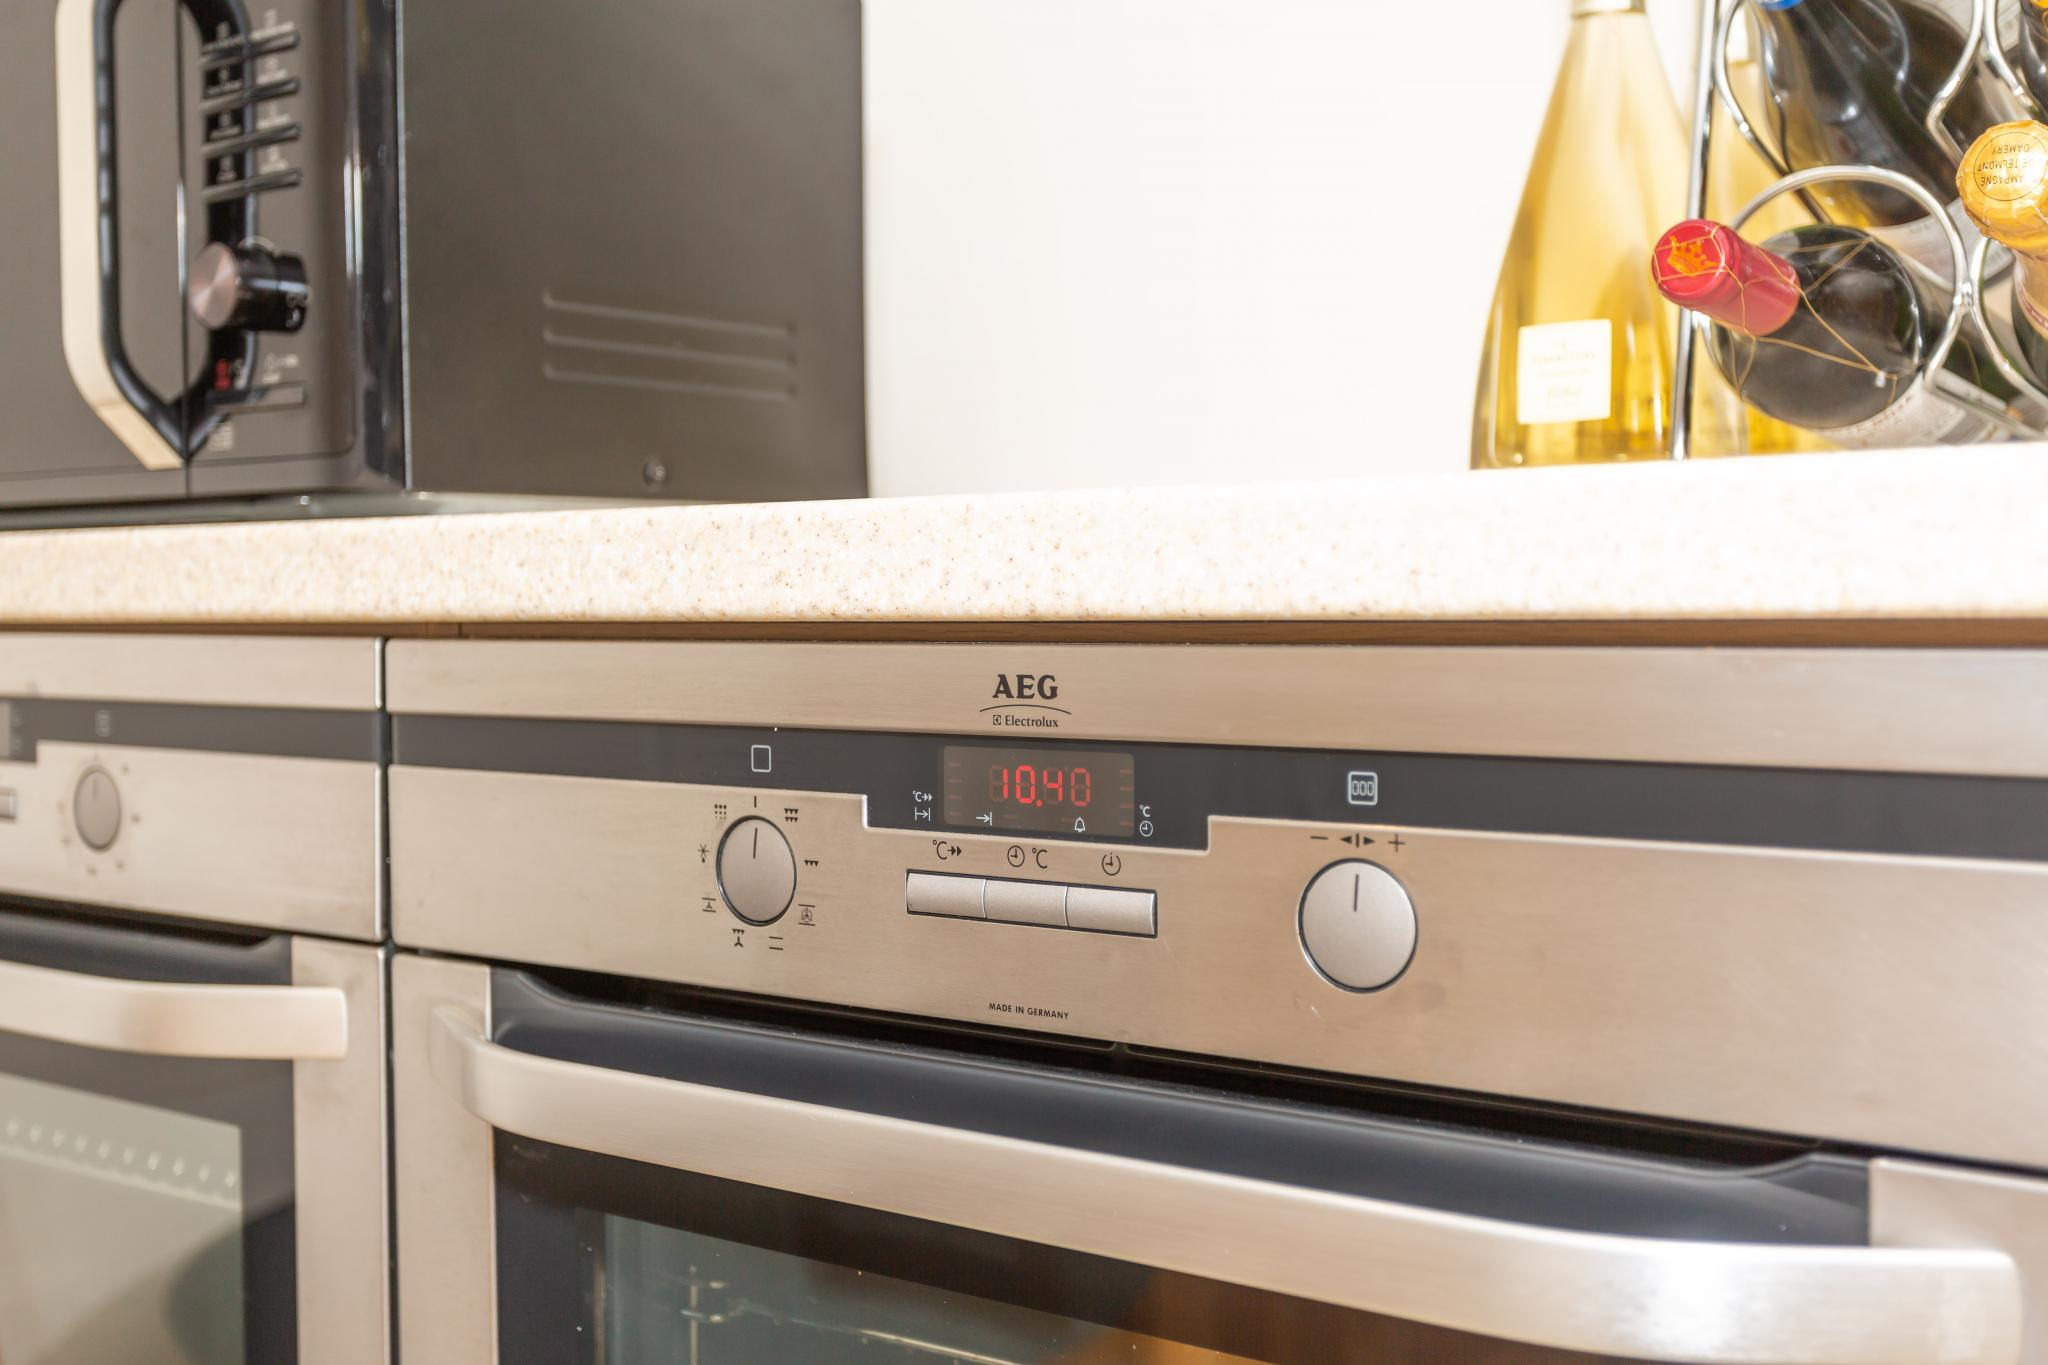 Last Chance To Buy Magnet Shaker Used Kitchen With Appliances York Used Kitchen Exchange